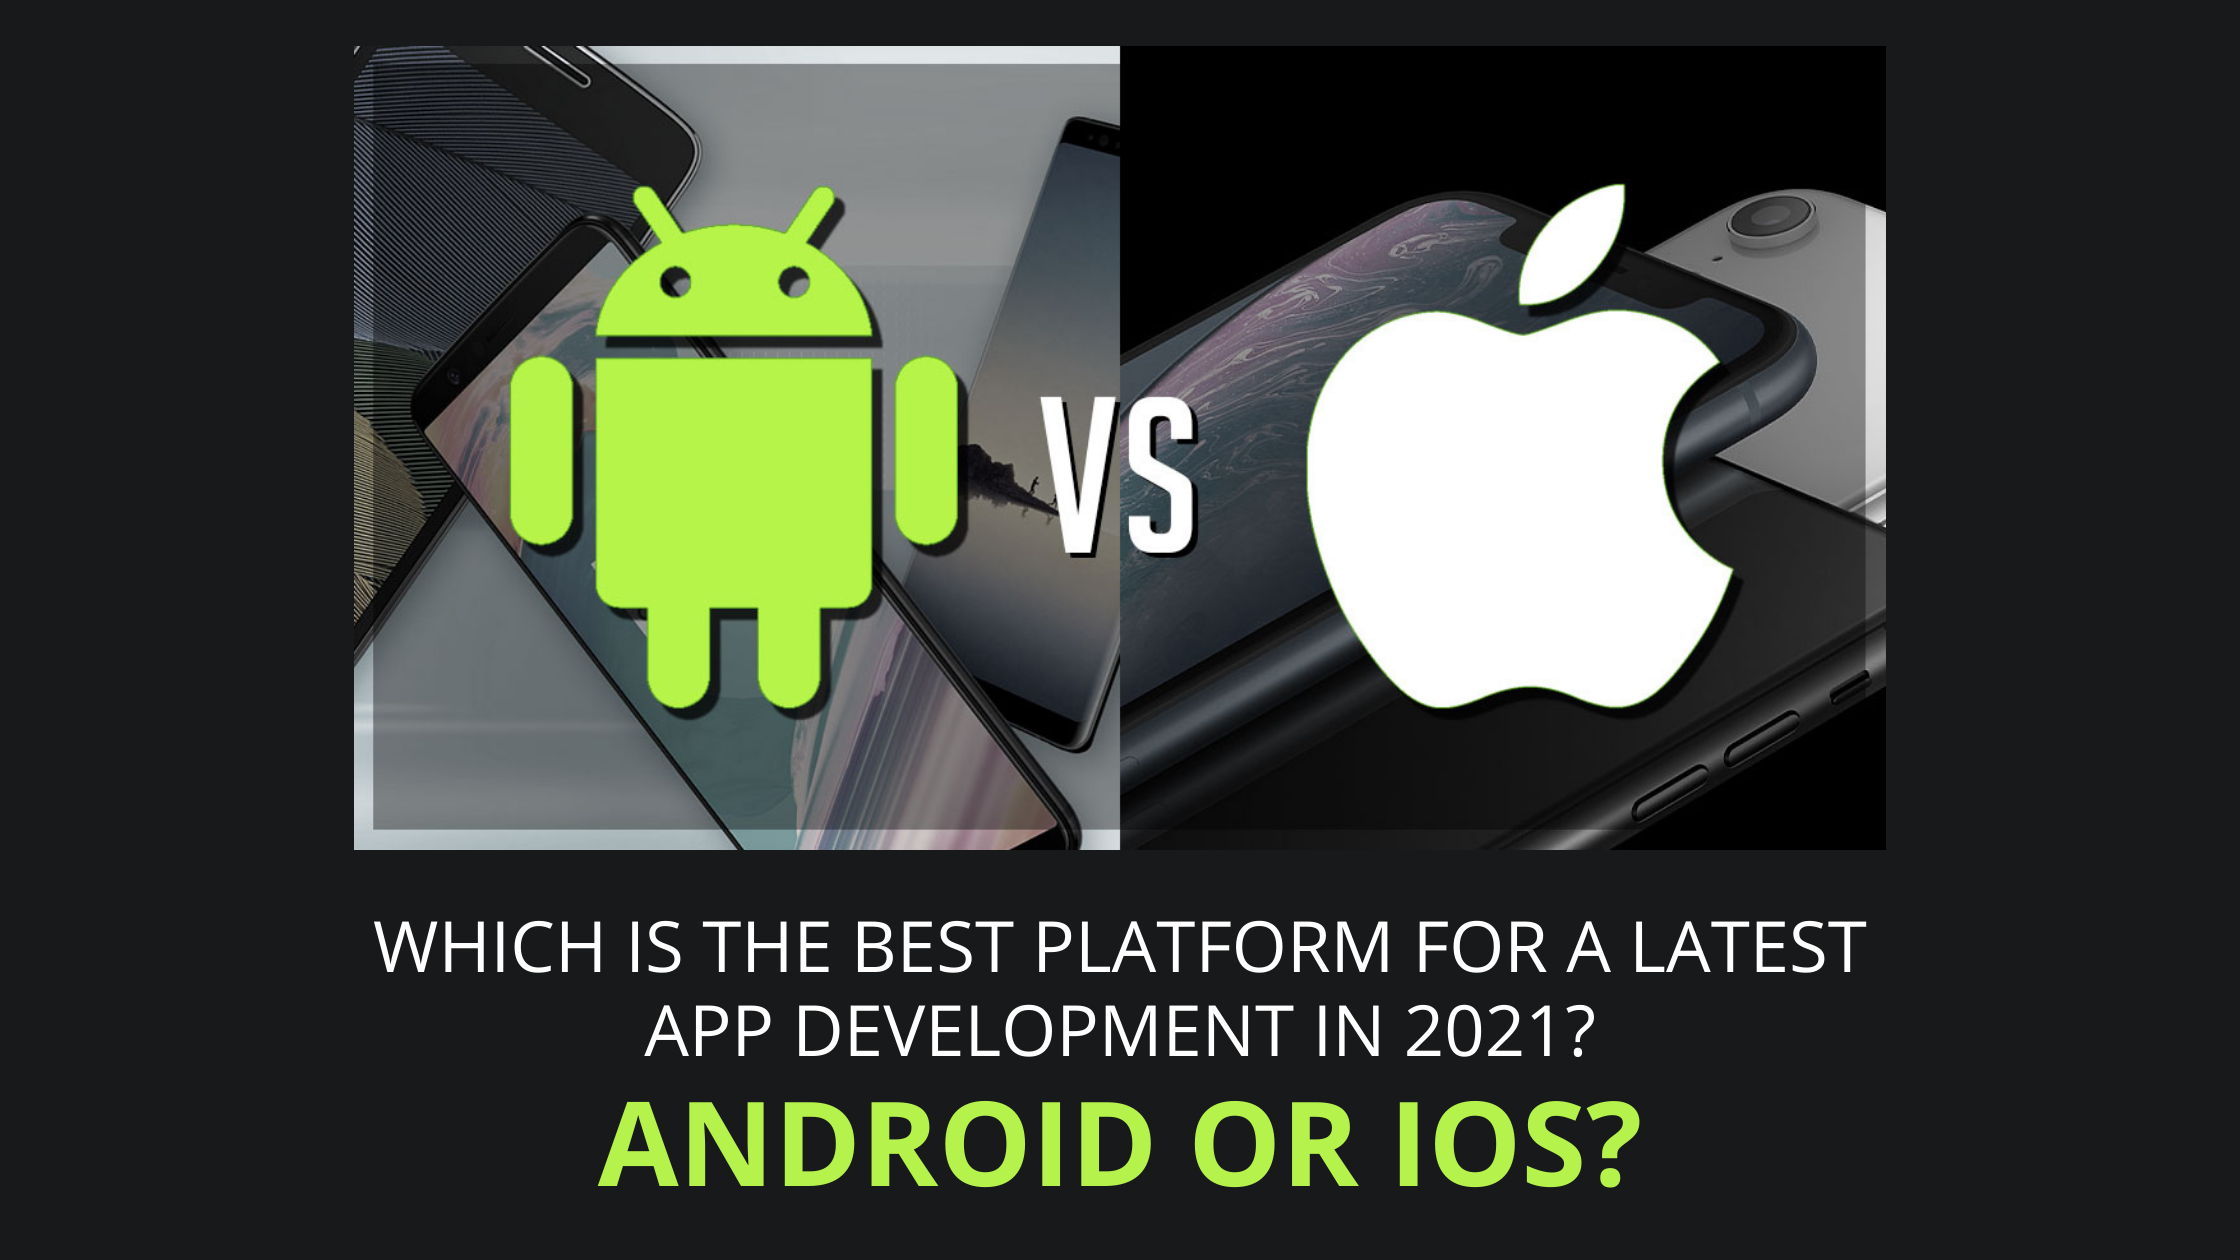 Which is the best platform for a latest app development in 2021, Android or IOS?